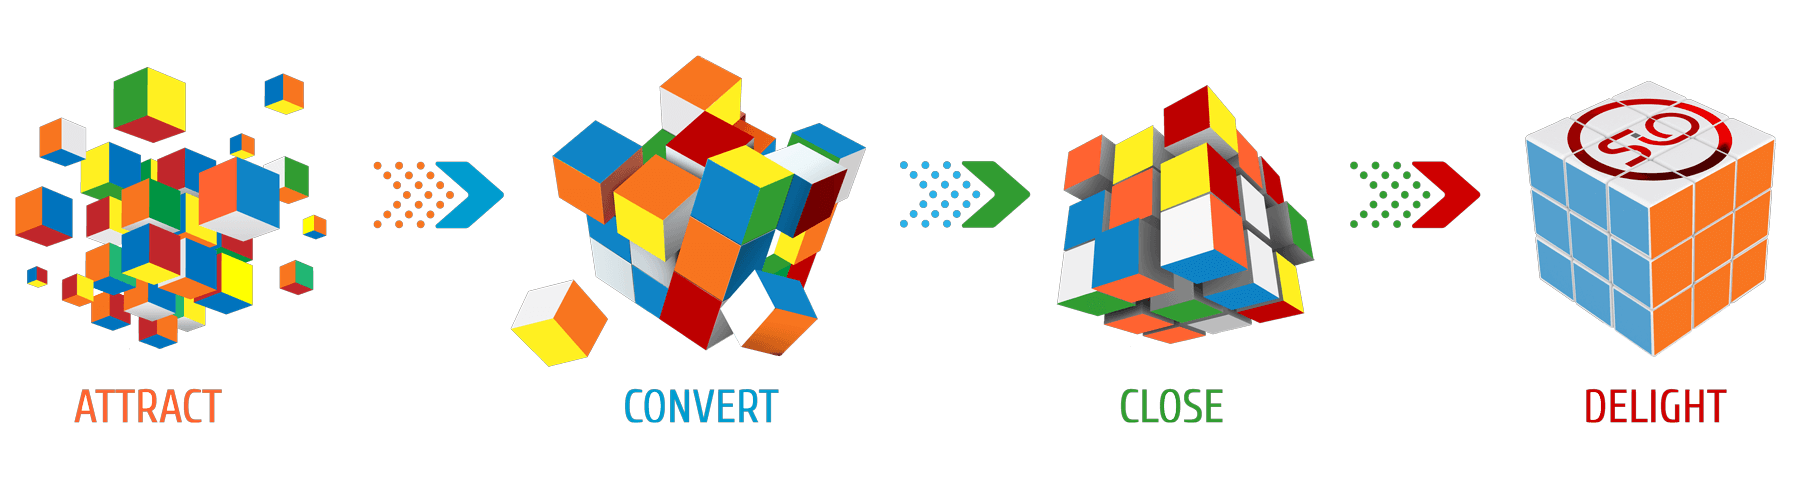 intelligent inbound marketing methodology Rubik's cube